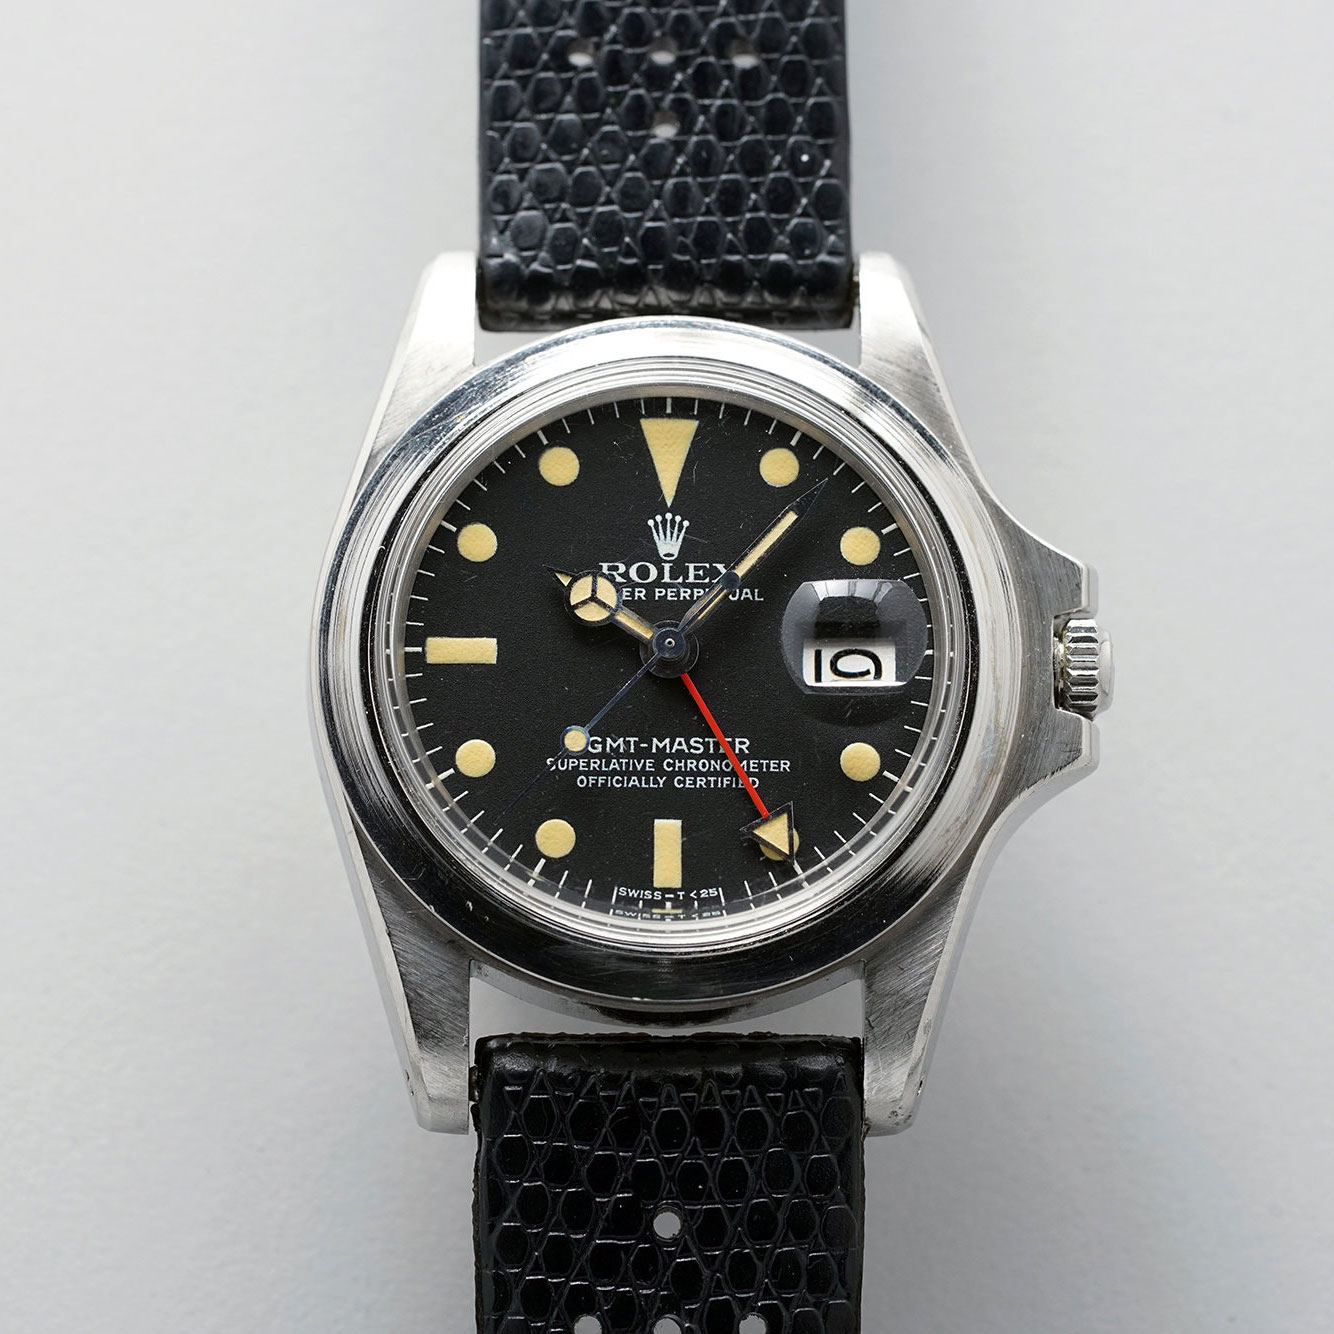 The dial-side of Marlon Brando's Rolex GMT-Master 1675 from 'Apocalypse Now' (Image: phillips.com/watches)